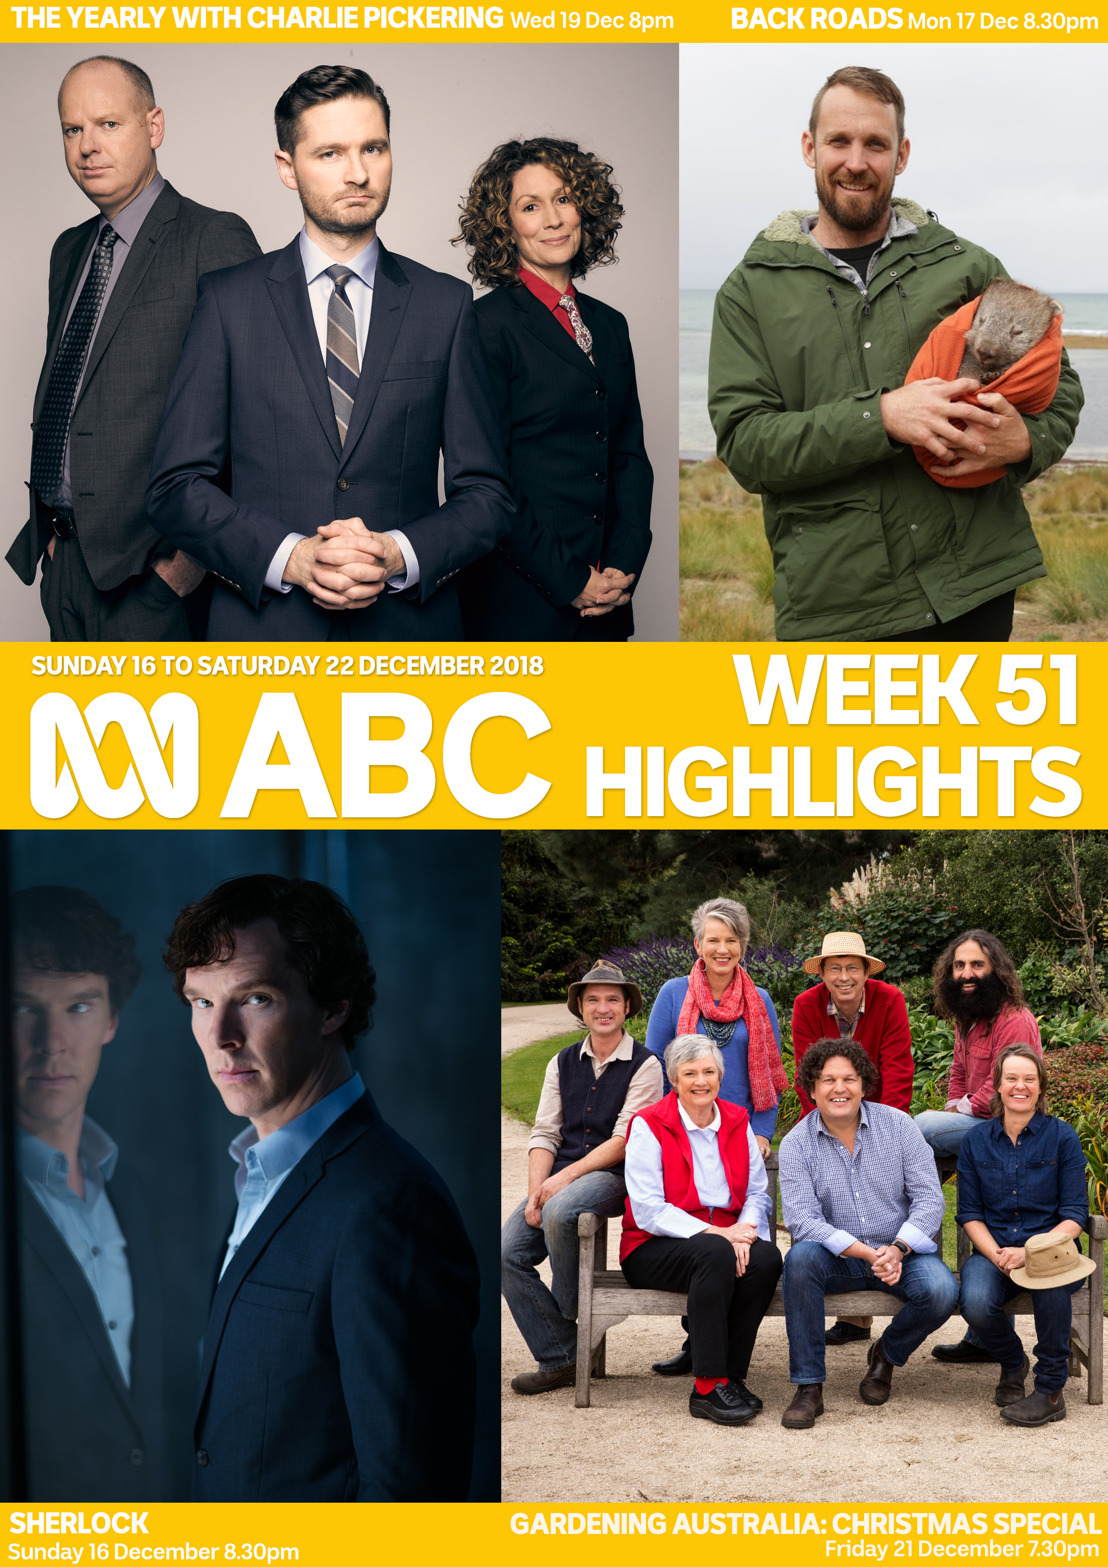 ABC TV Program Highlights - Week 51